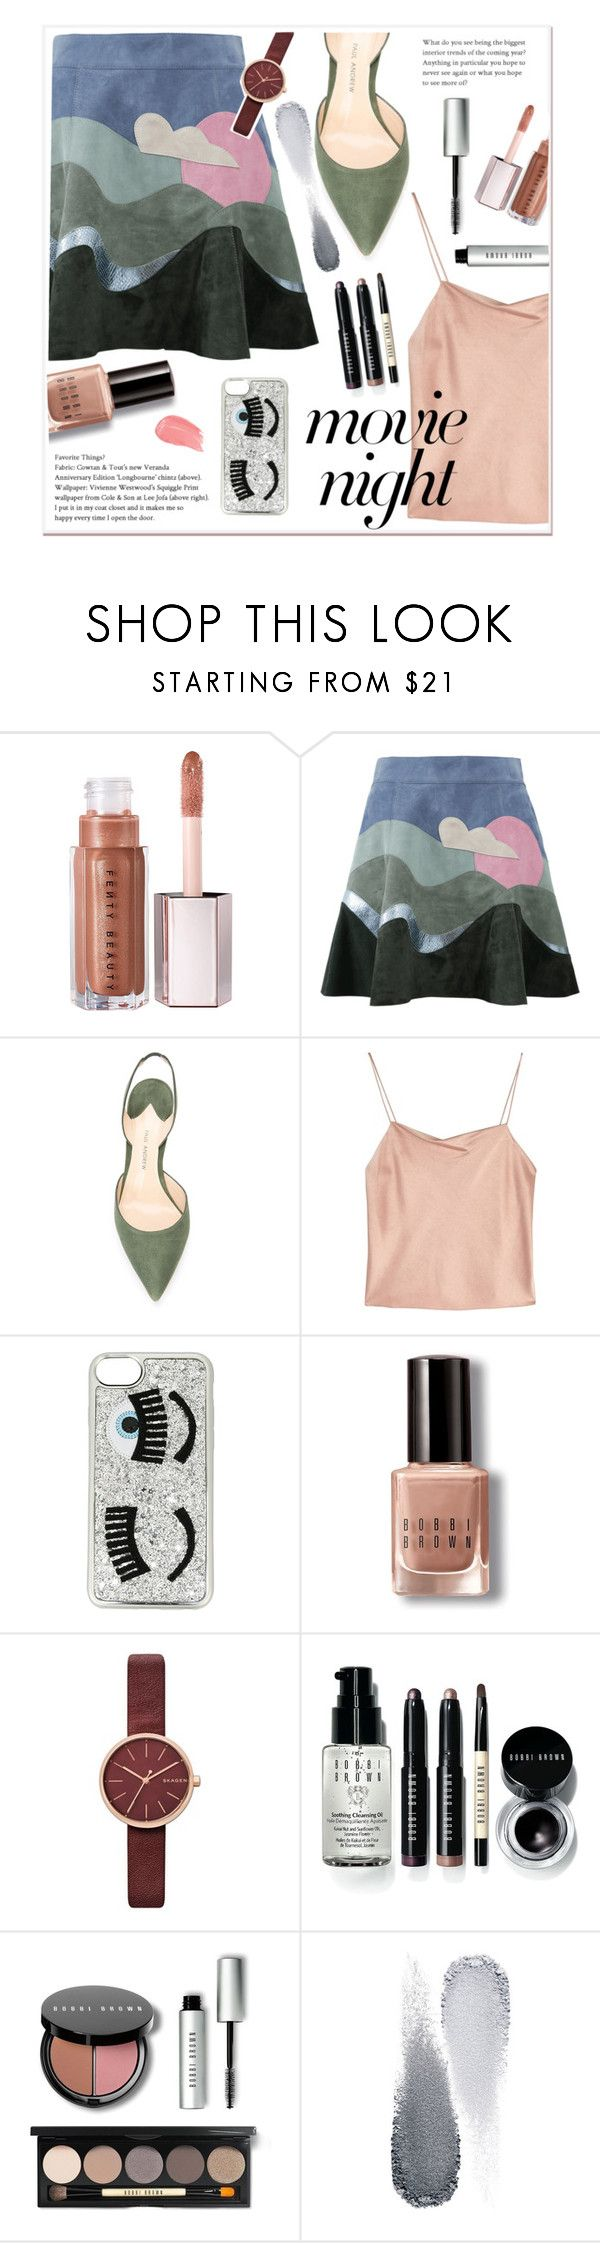 """Grn Pnk"" by elenaafiya ❤ liked on Polyvore featuring Marc Jacobs, Paul Andrew, Alice + Olivia, Chiara Ferragni, Bobbi Brown Cosmetics, Skagen and Clé de Peau Beauté"